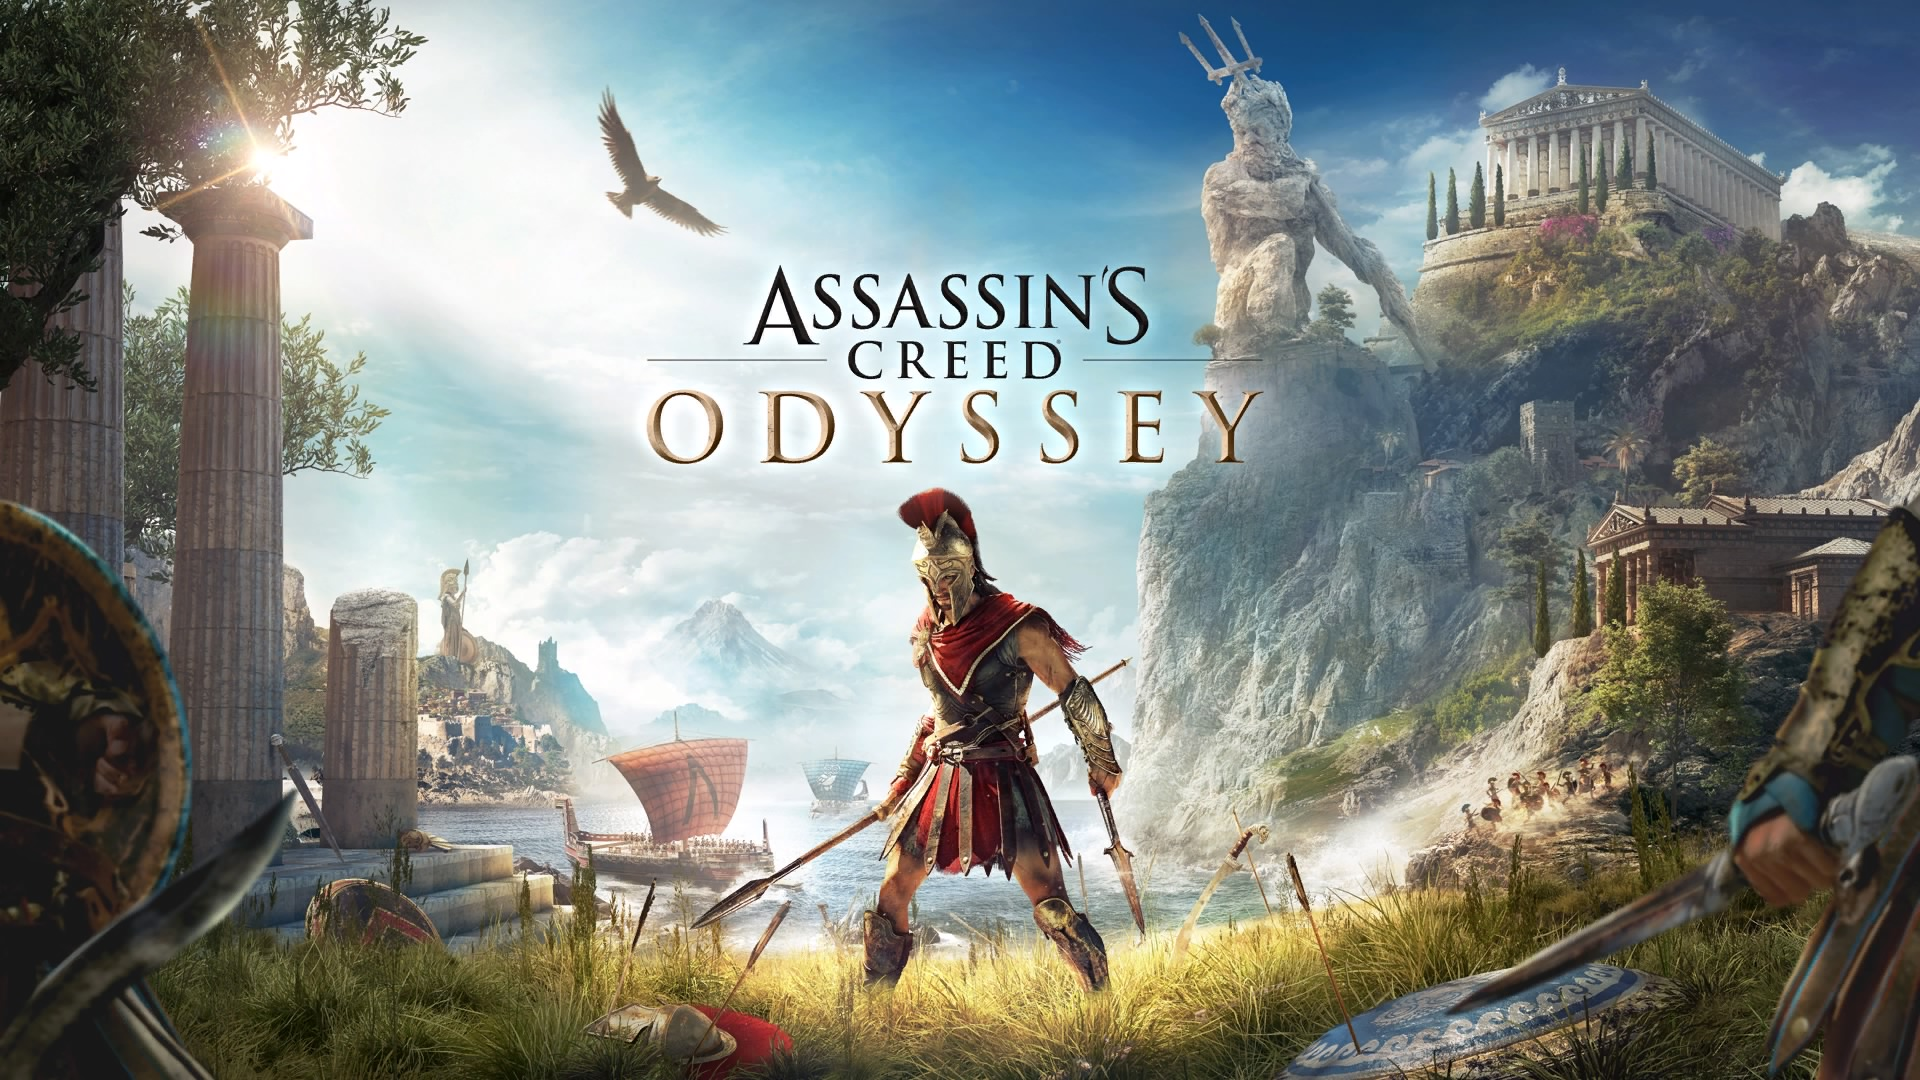 Assassin's Creed Odyssey - Recenzia